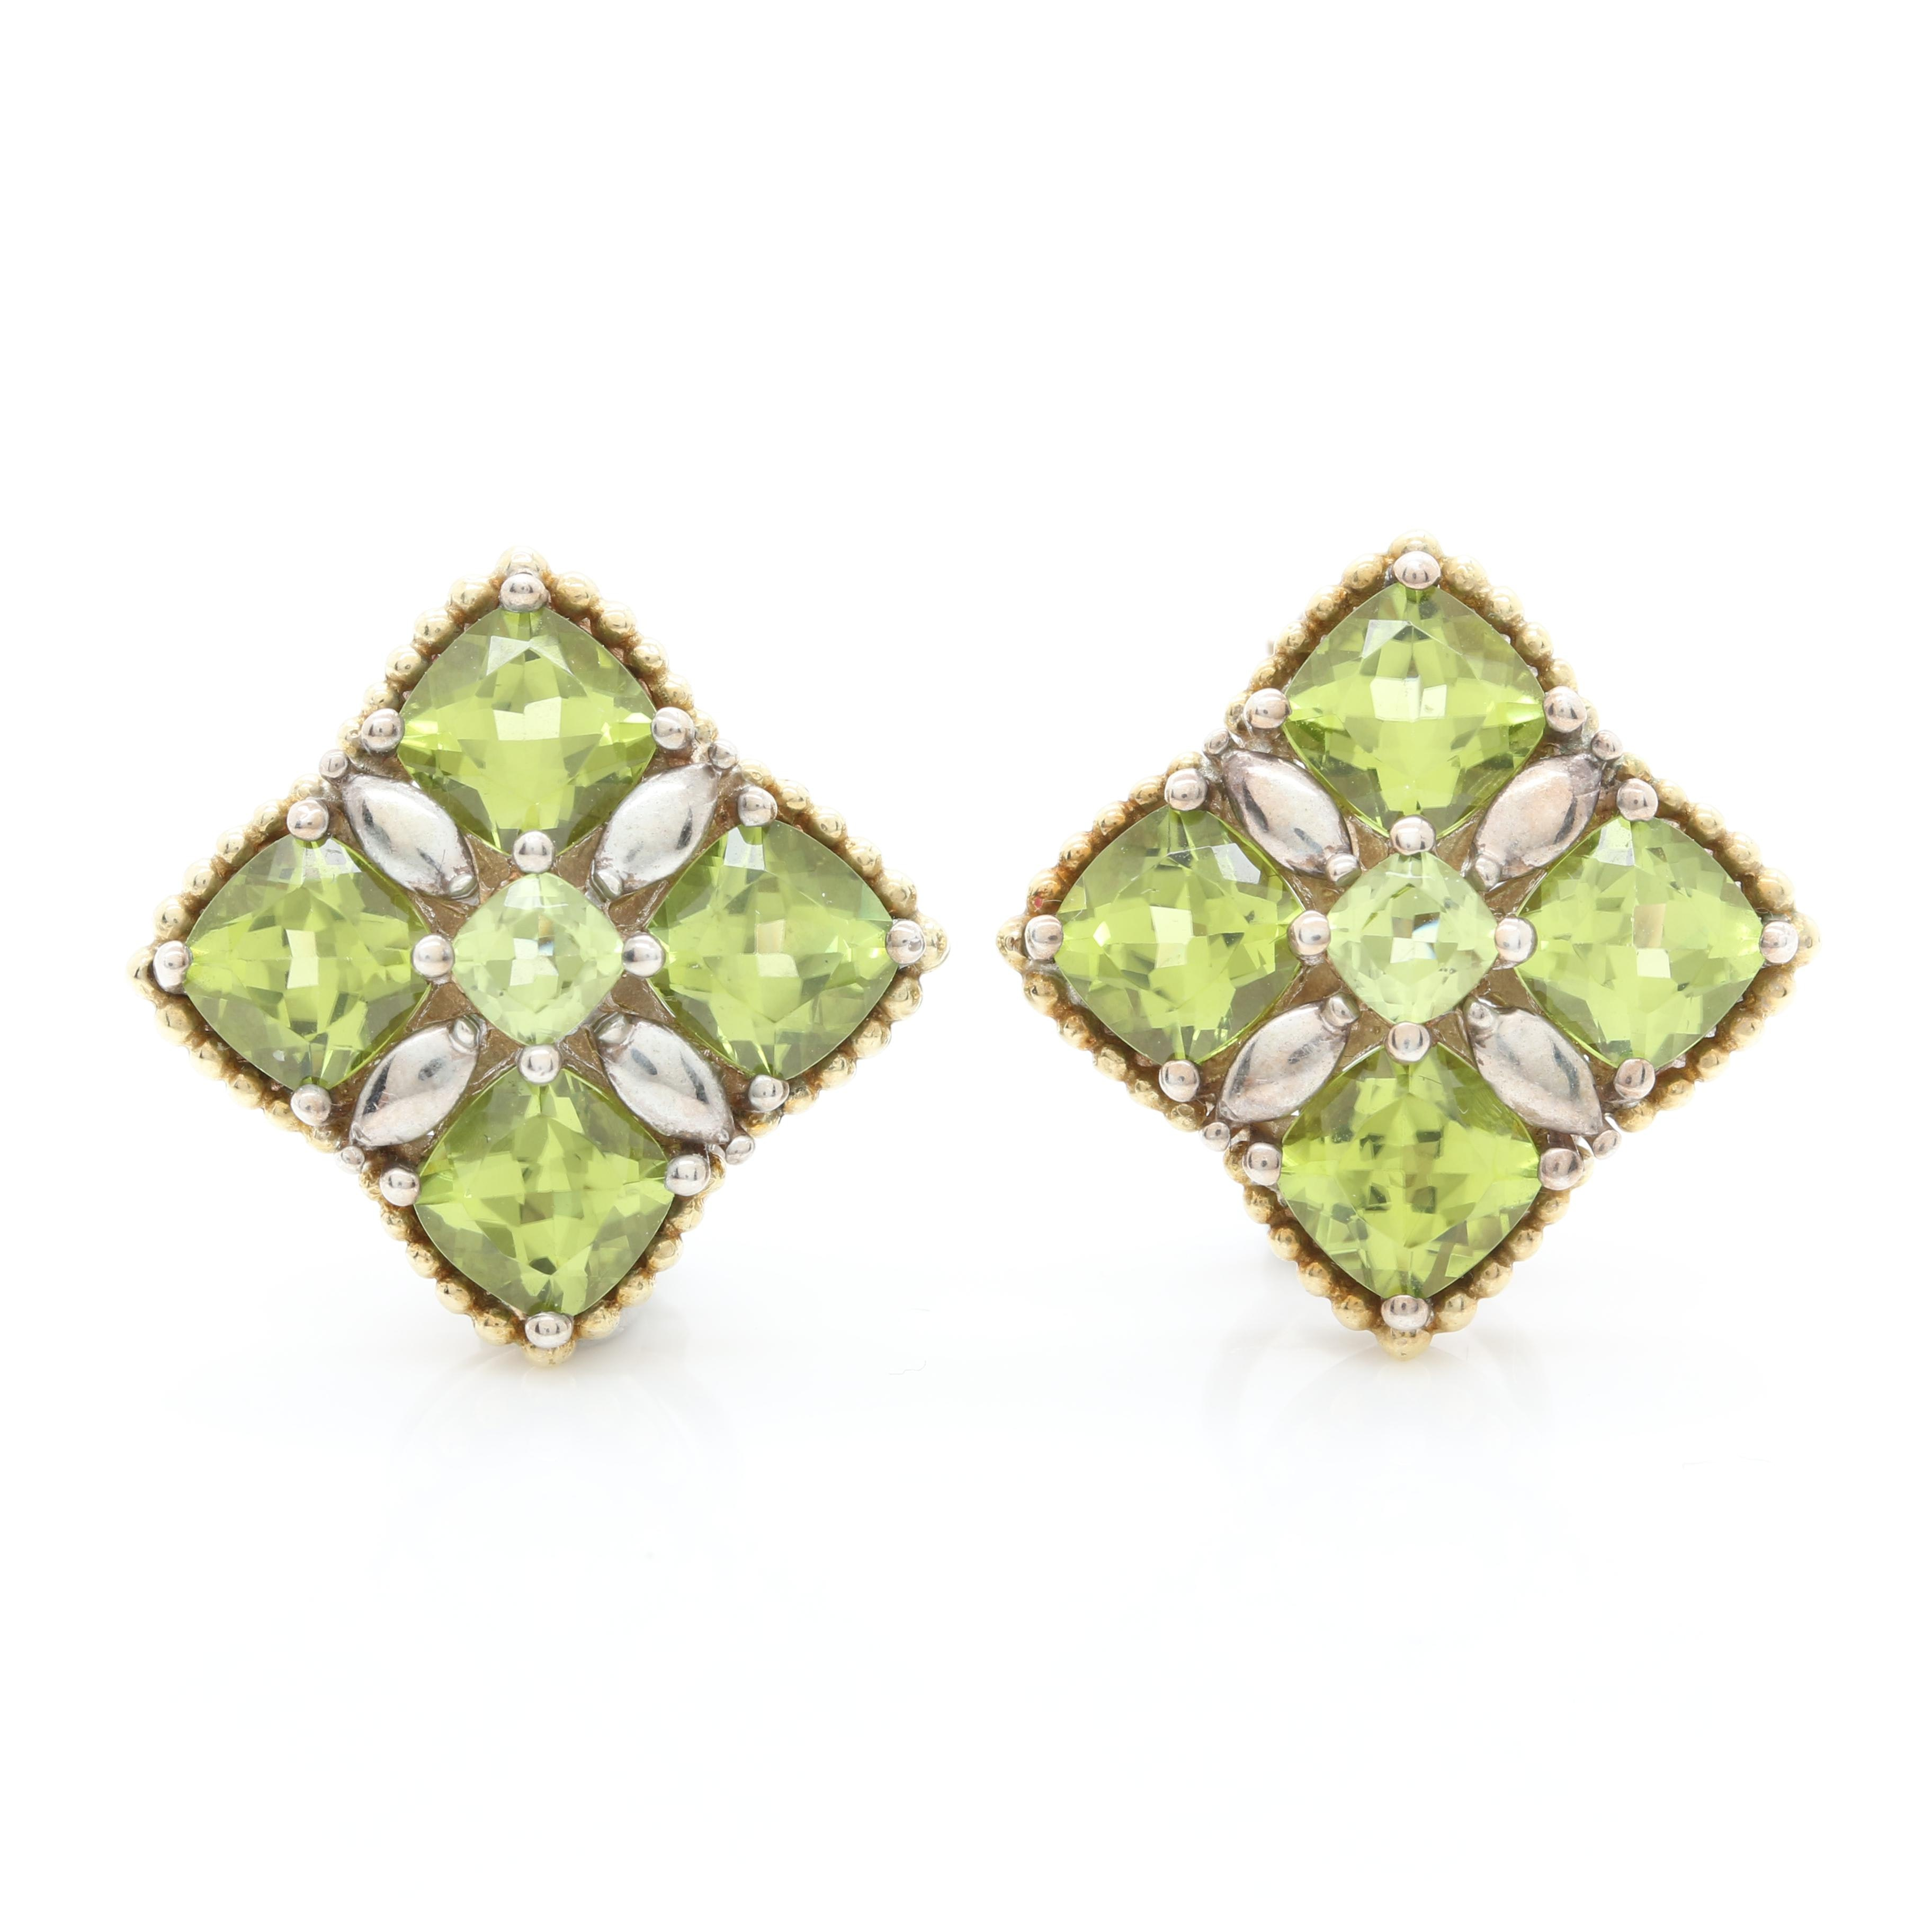 Lagos Caviar Sterling Silver and 18K Yellow Gold Peridot Earrings